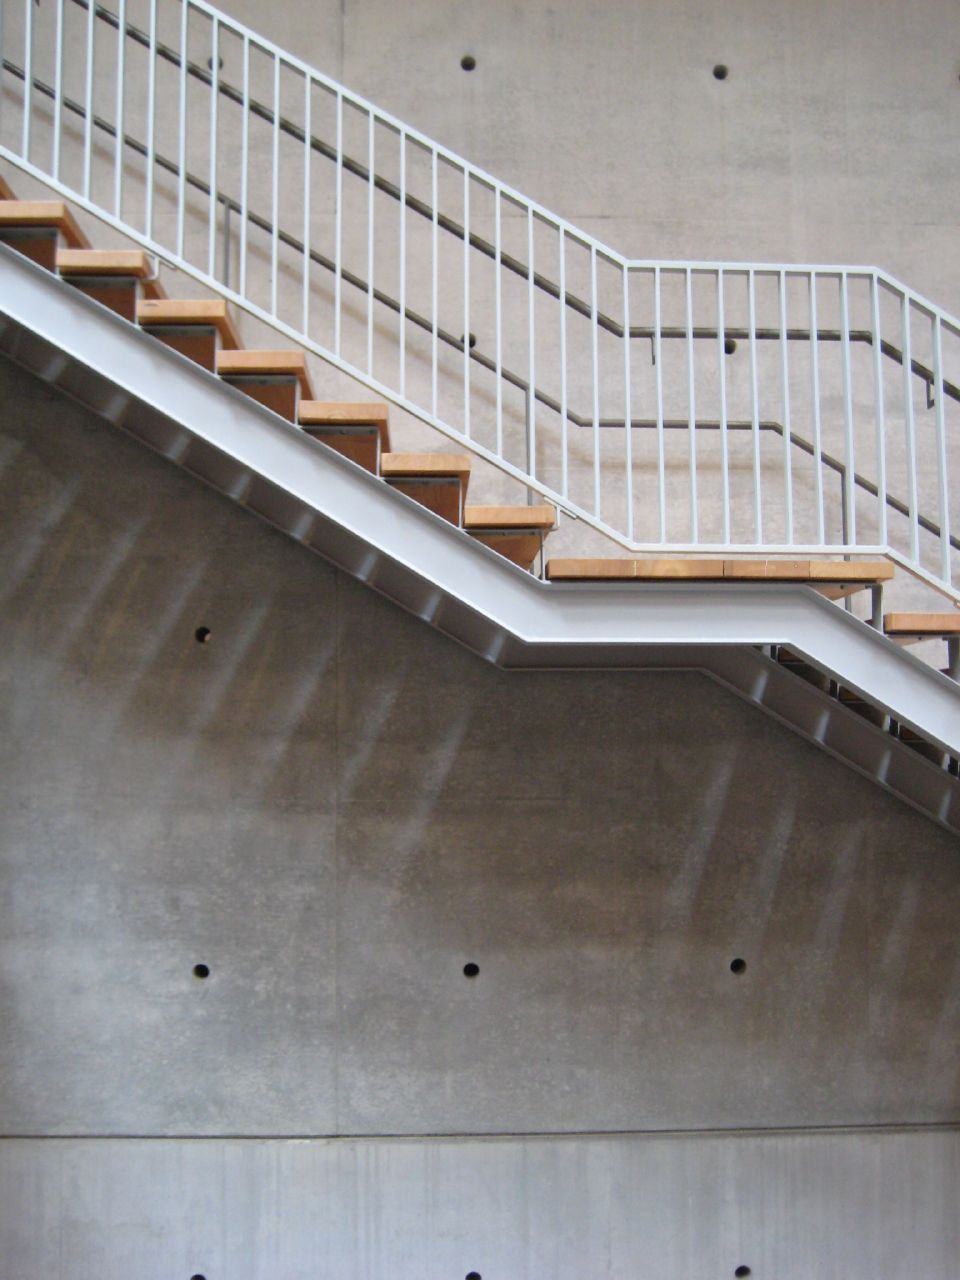 1000+ images about Details on Pinterest | Peter Zumthor ...